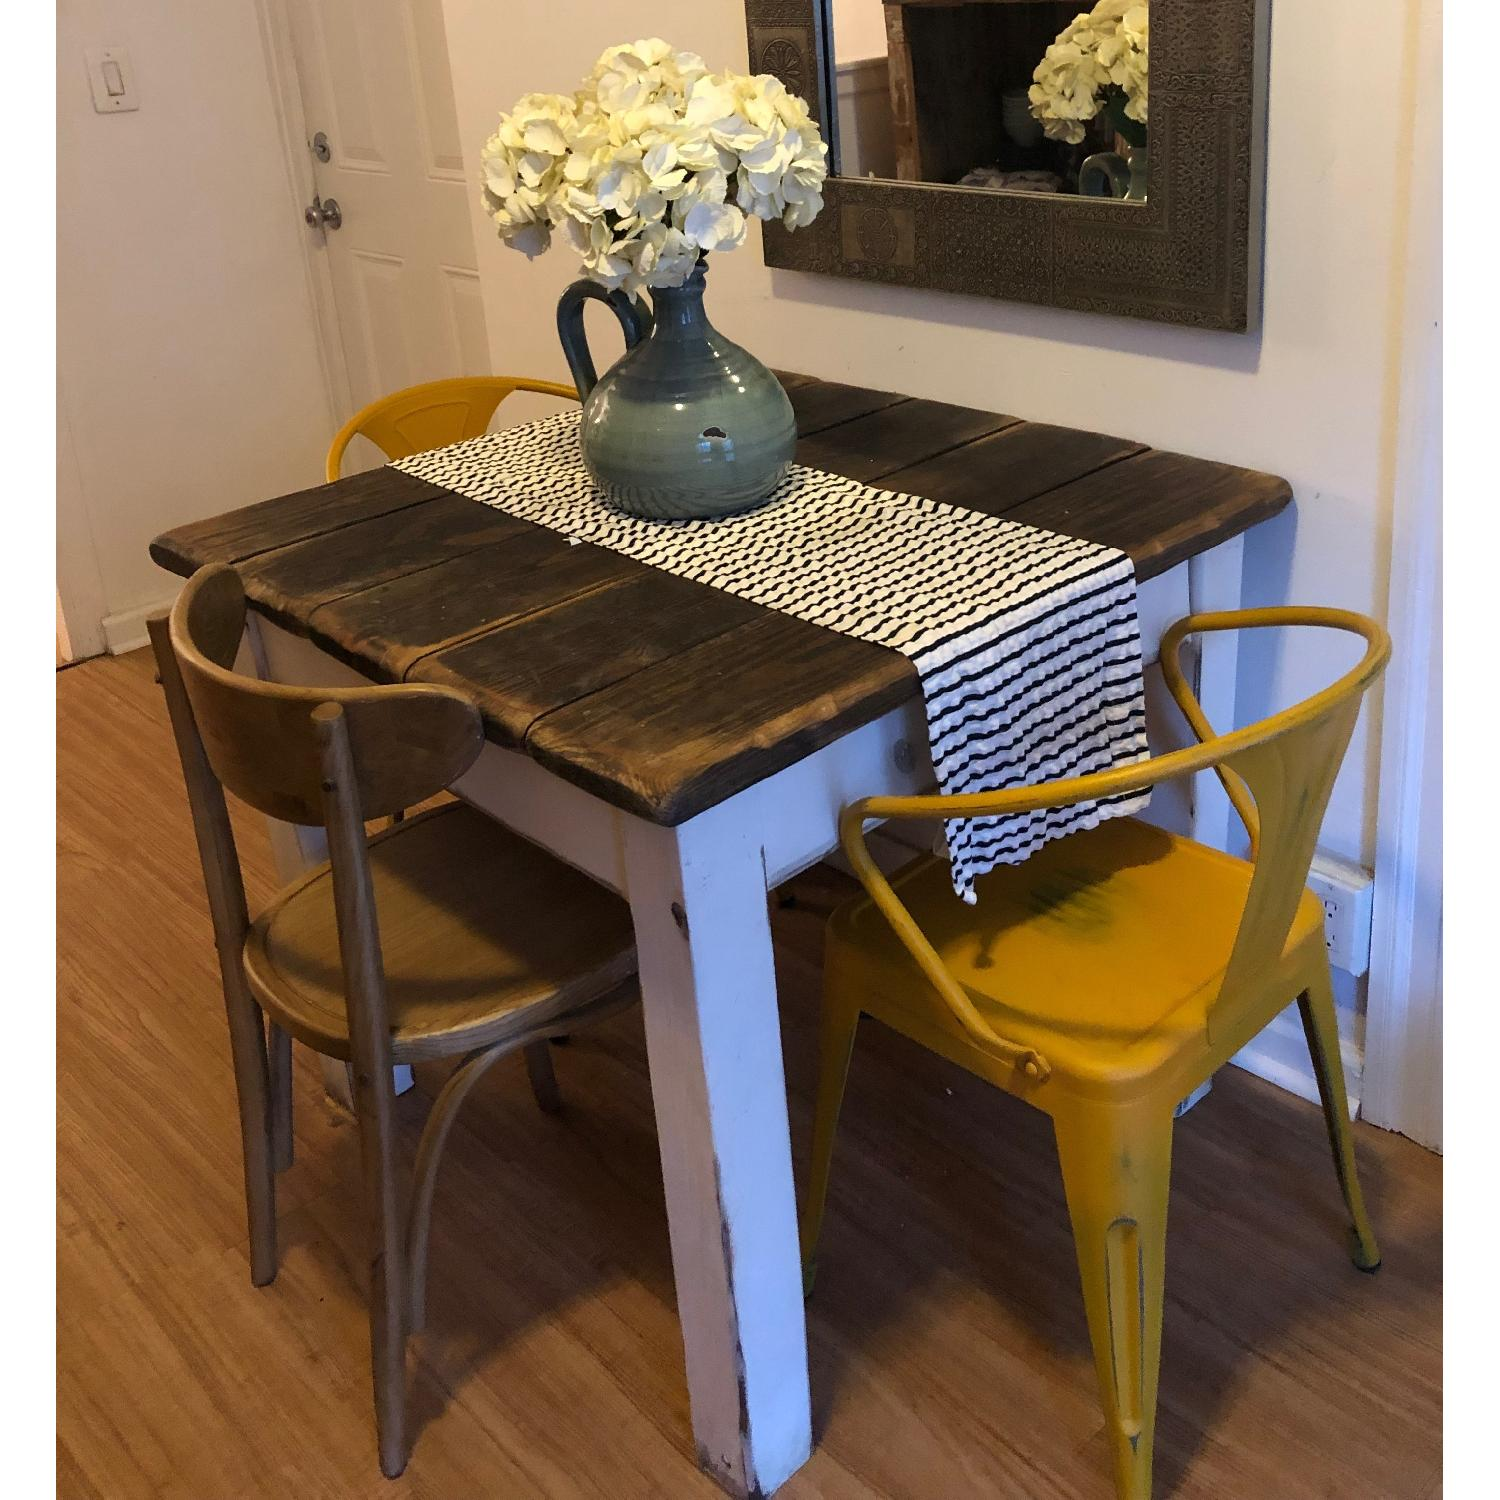 Modway Promenade Dining Chairs in Yellow-2